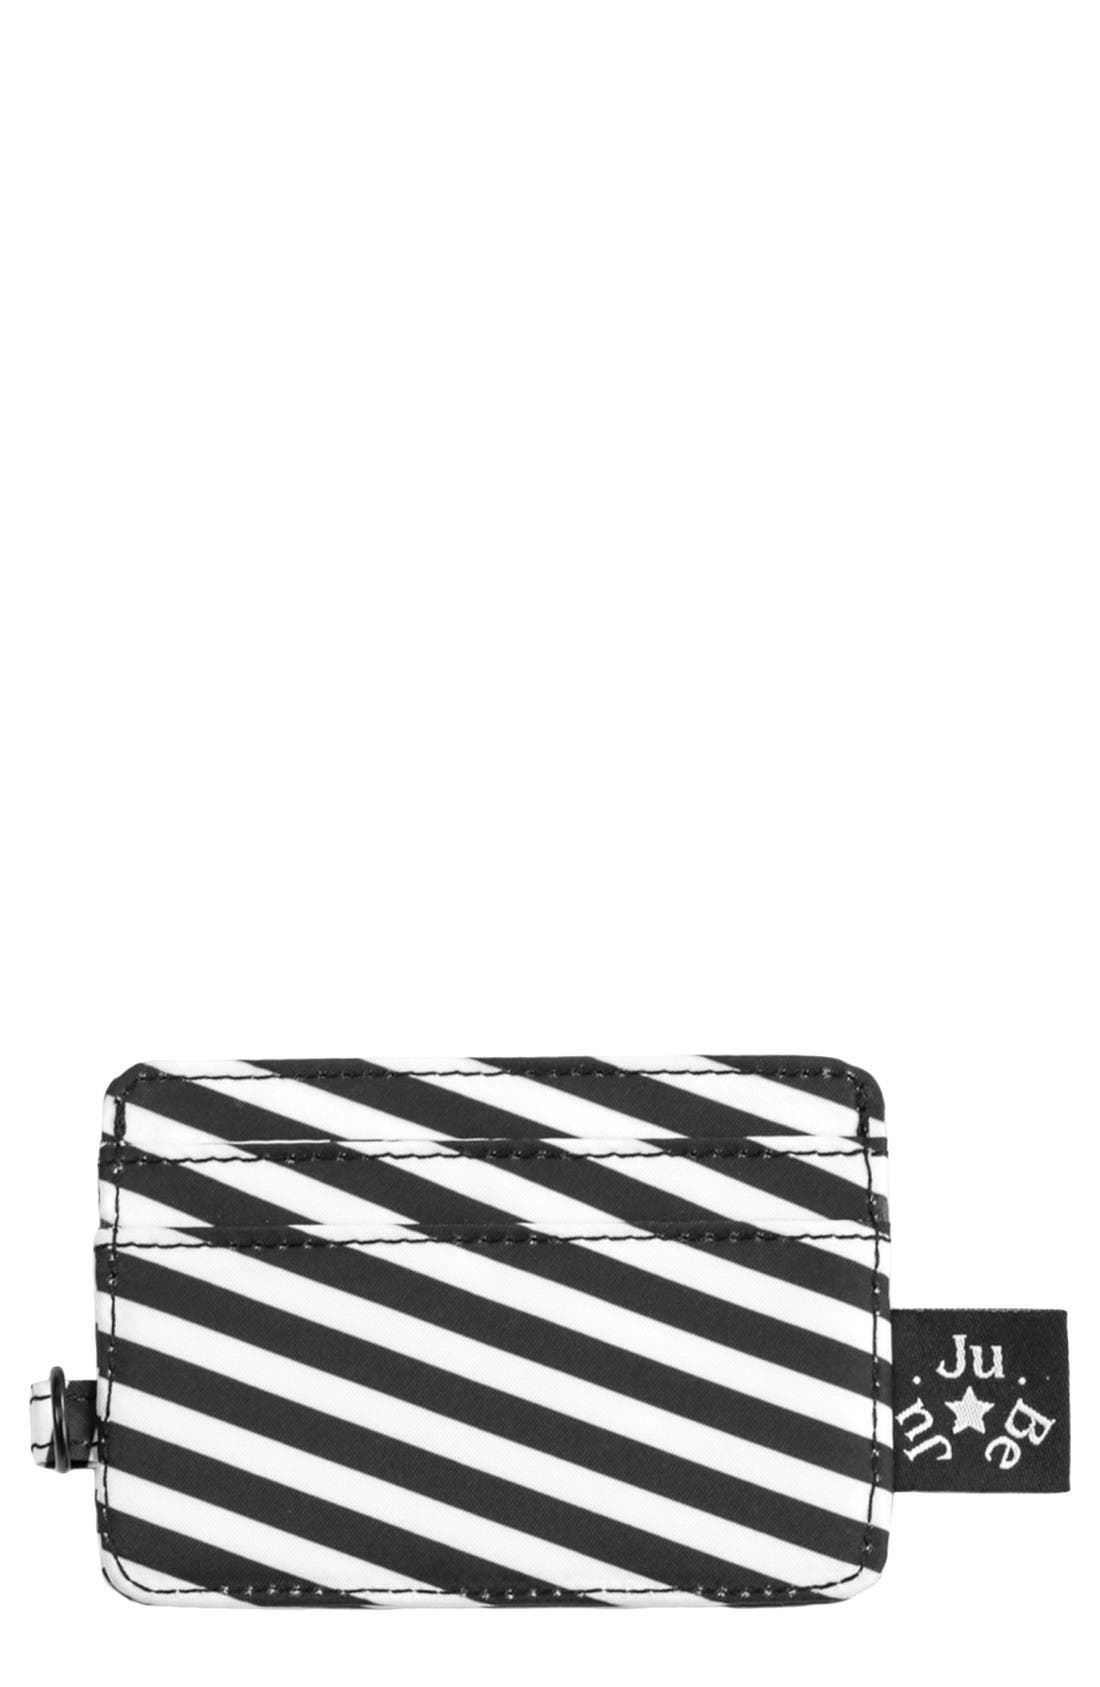 Ju-Ju-Be Legacy Be Charged Card Case